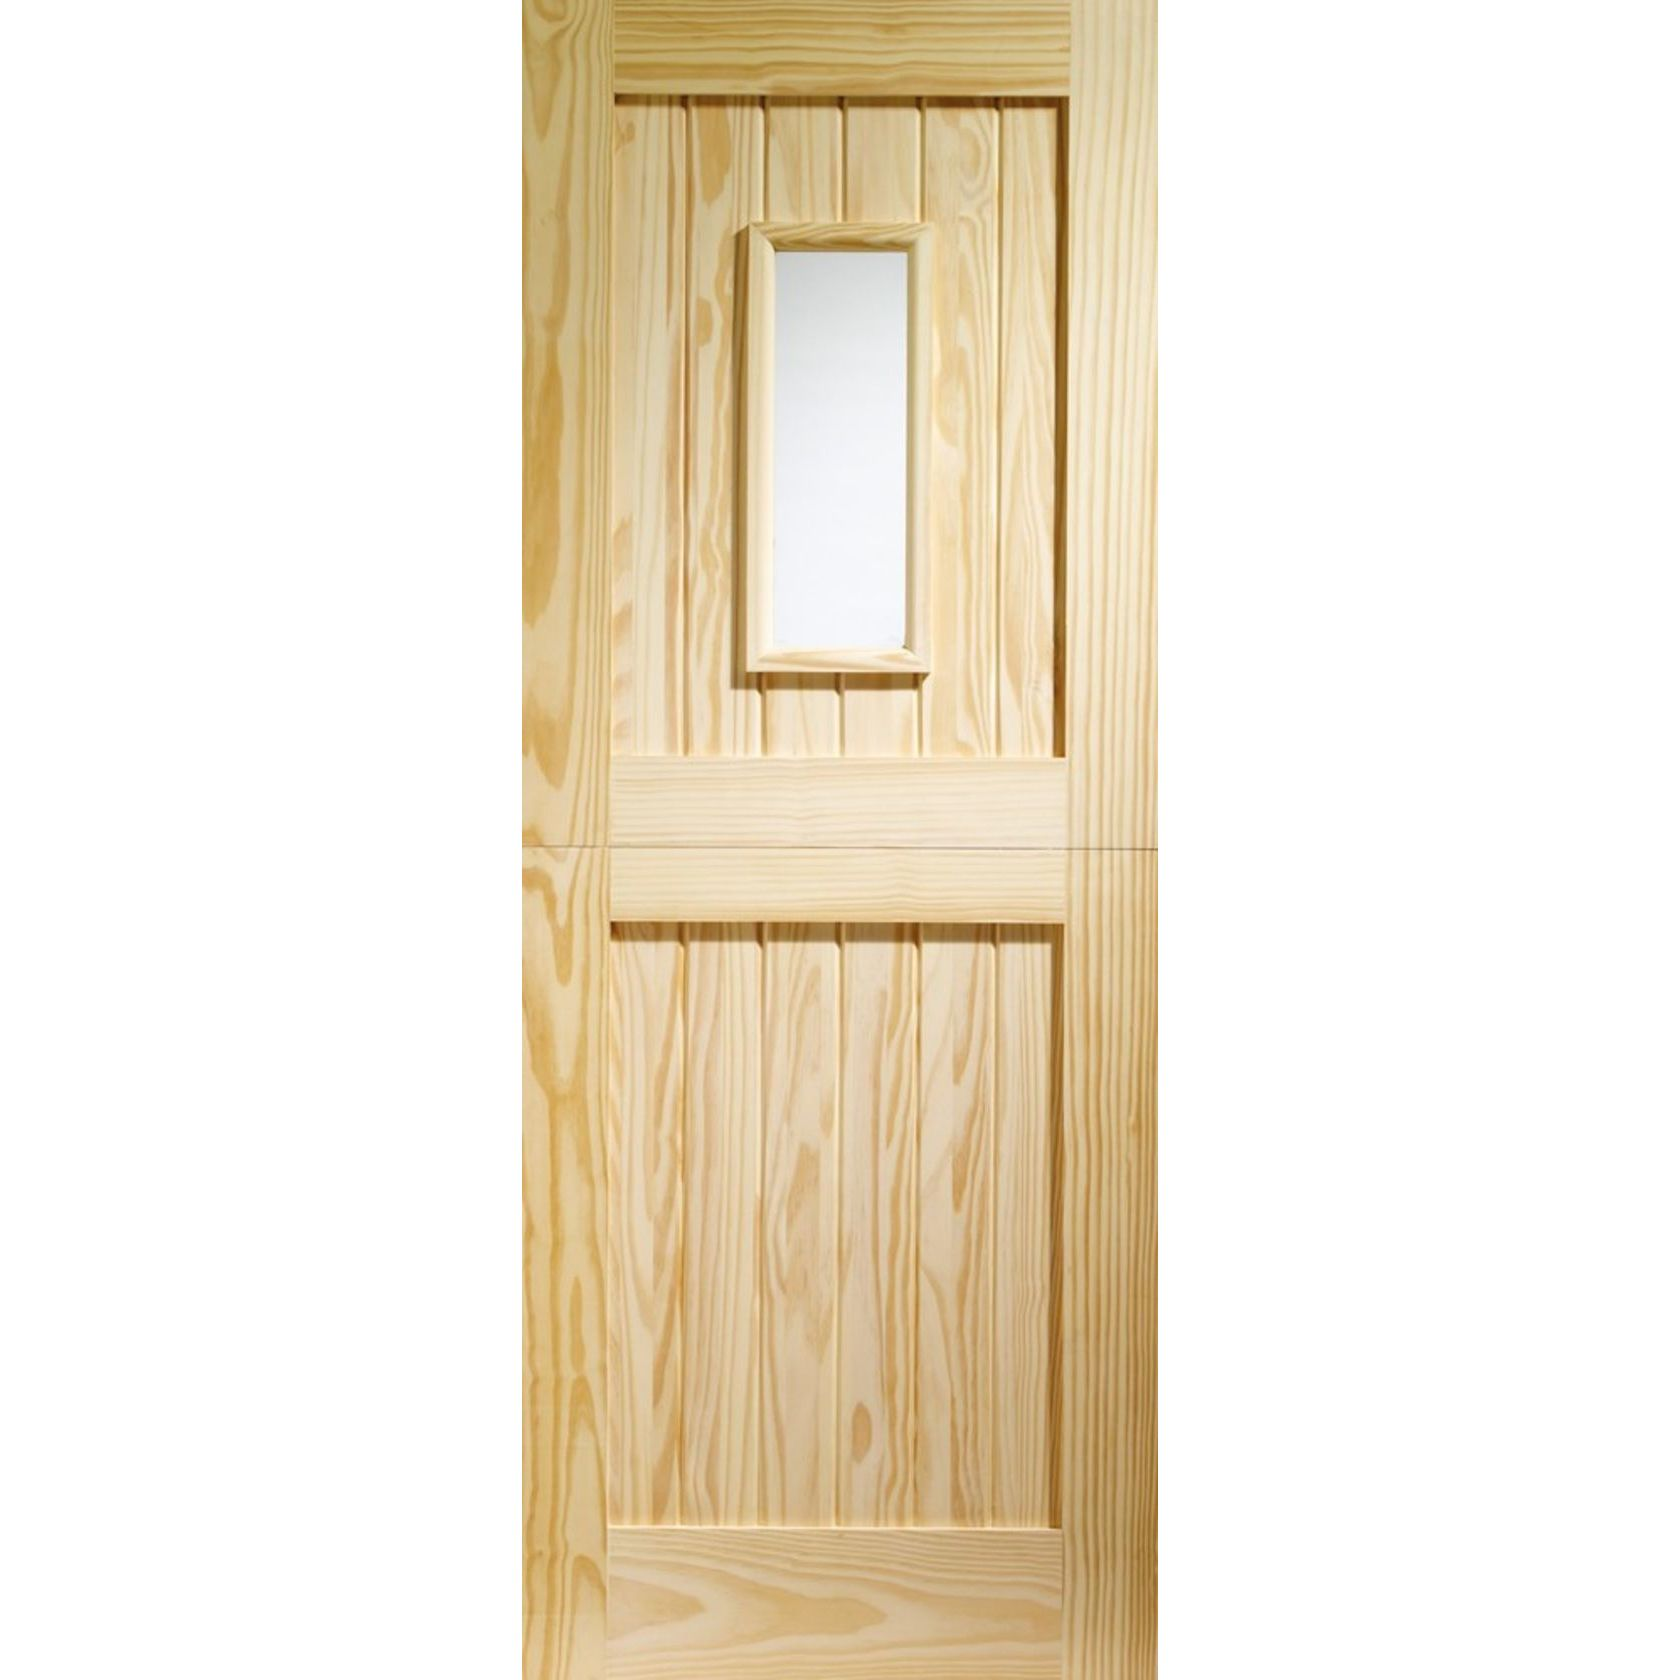 Stable 1-light Clear Glazed Clear Pine External Door